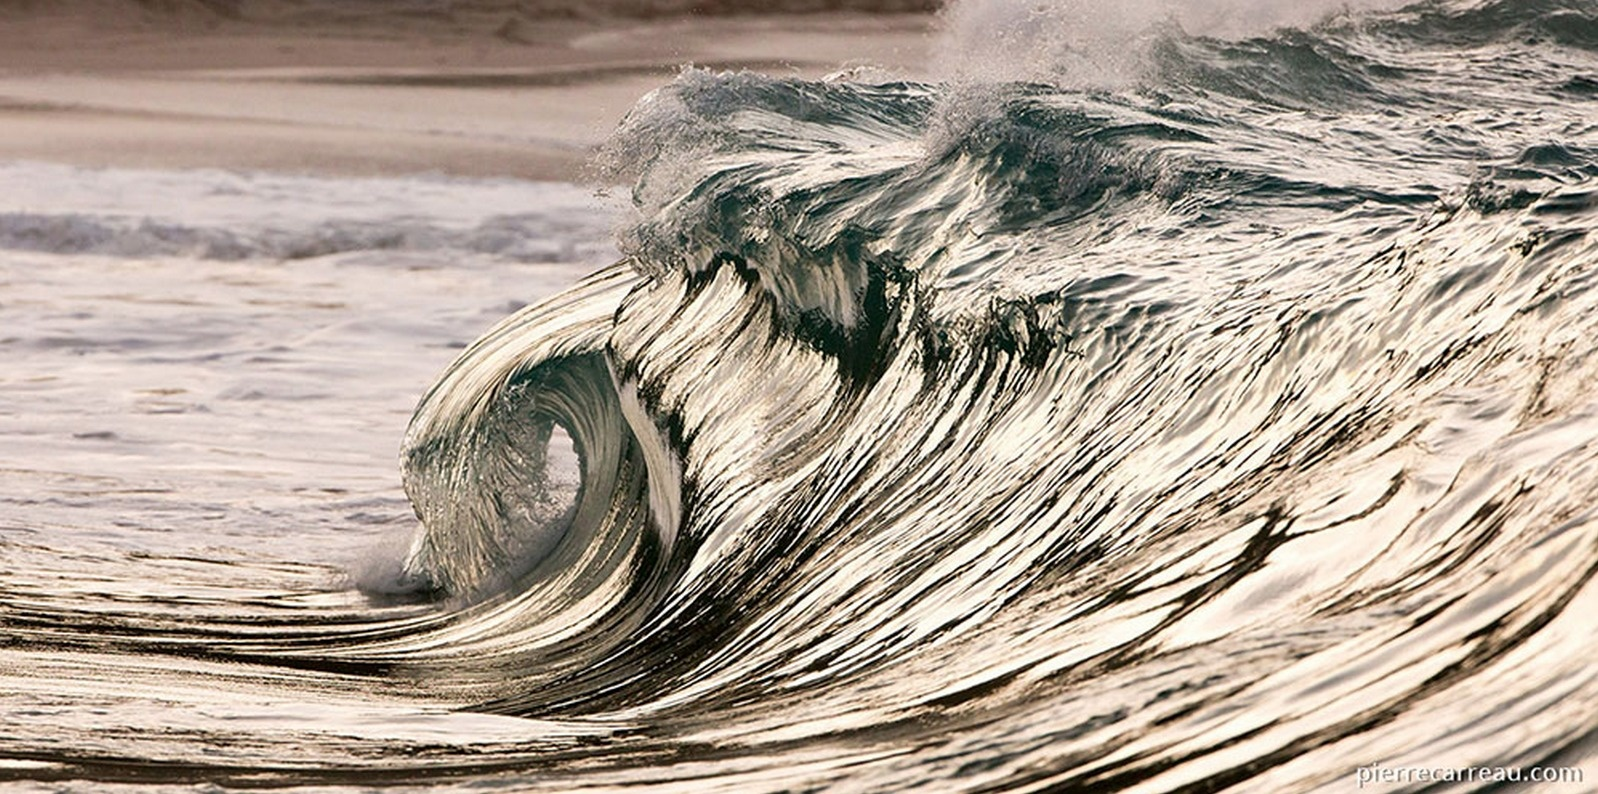 wave-photos-3